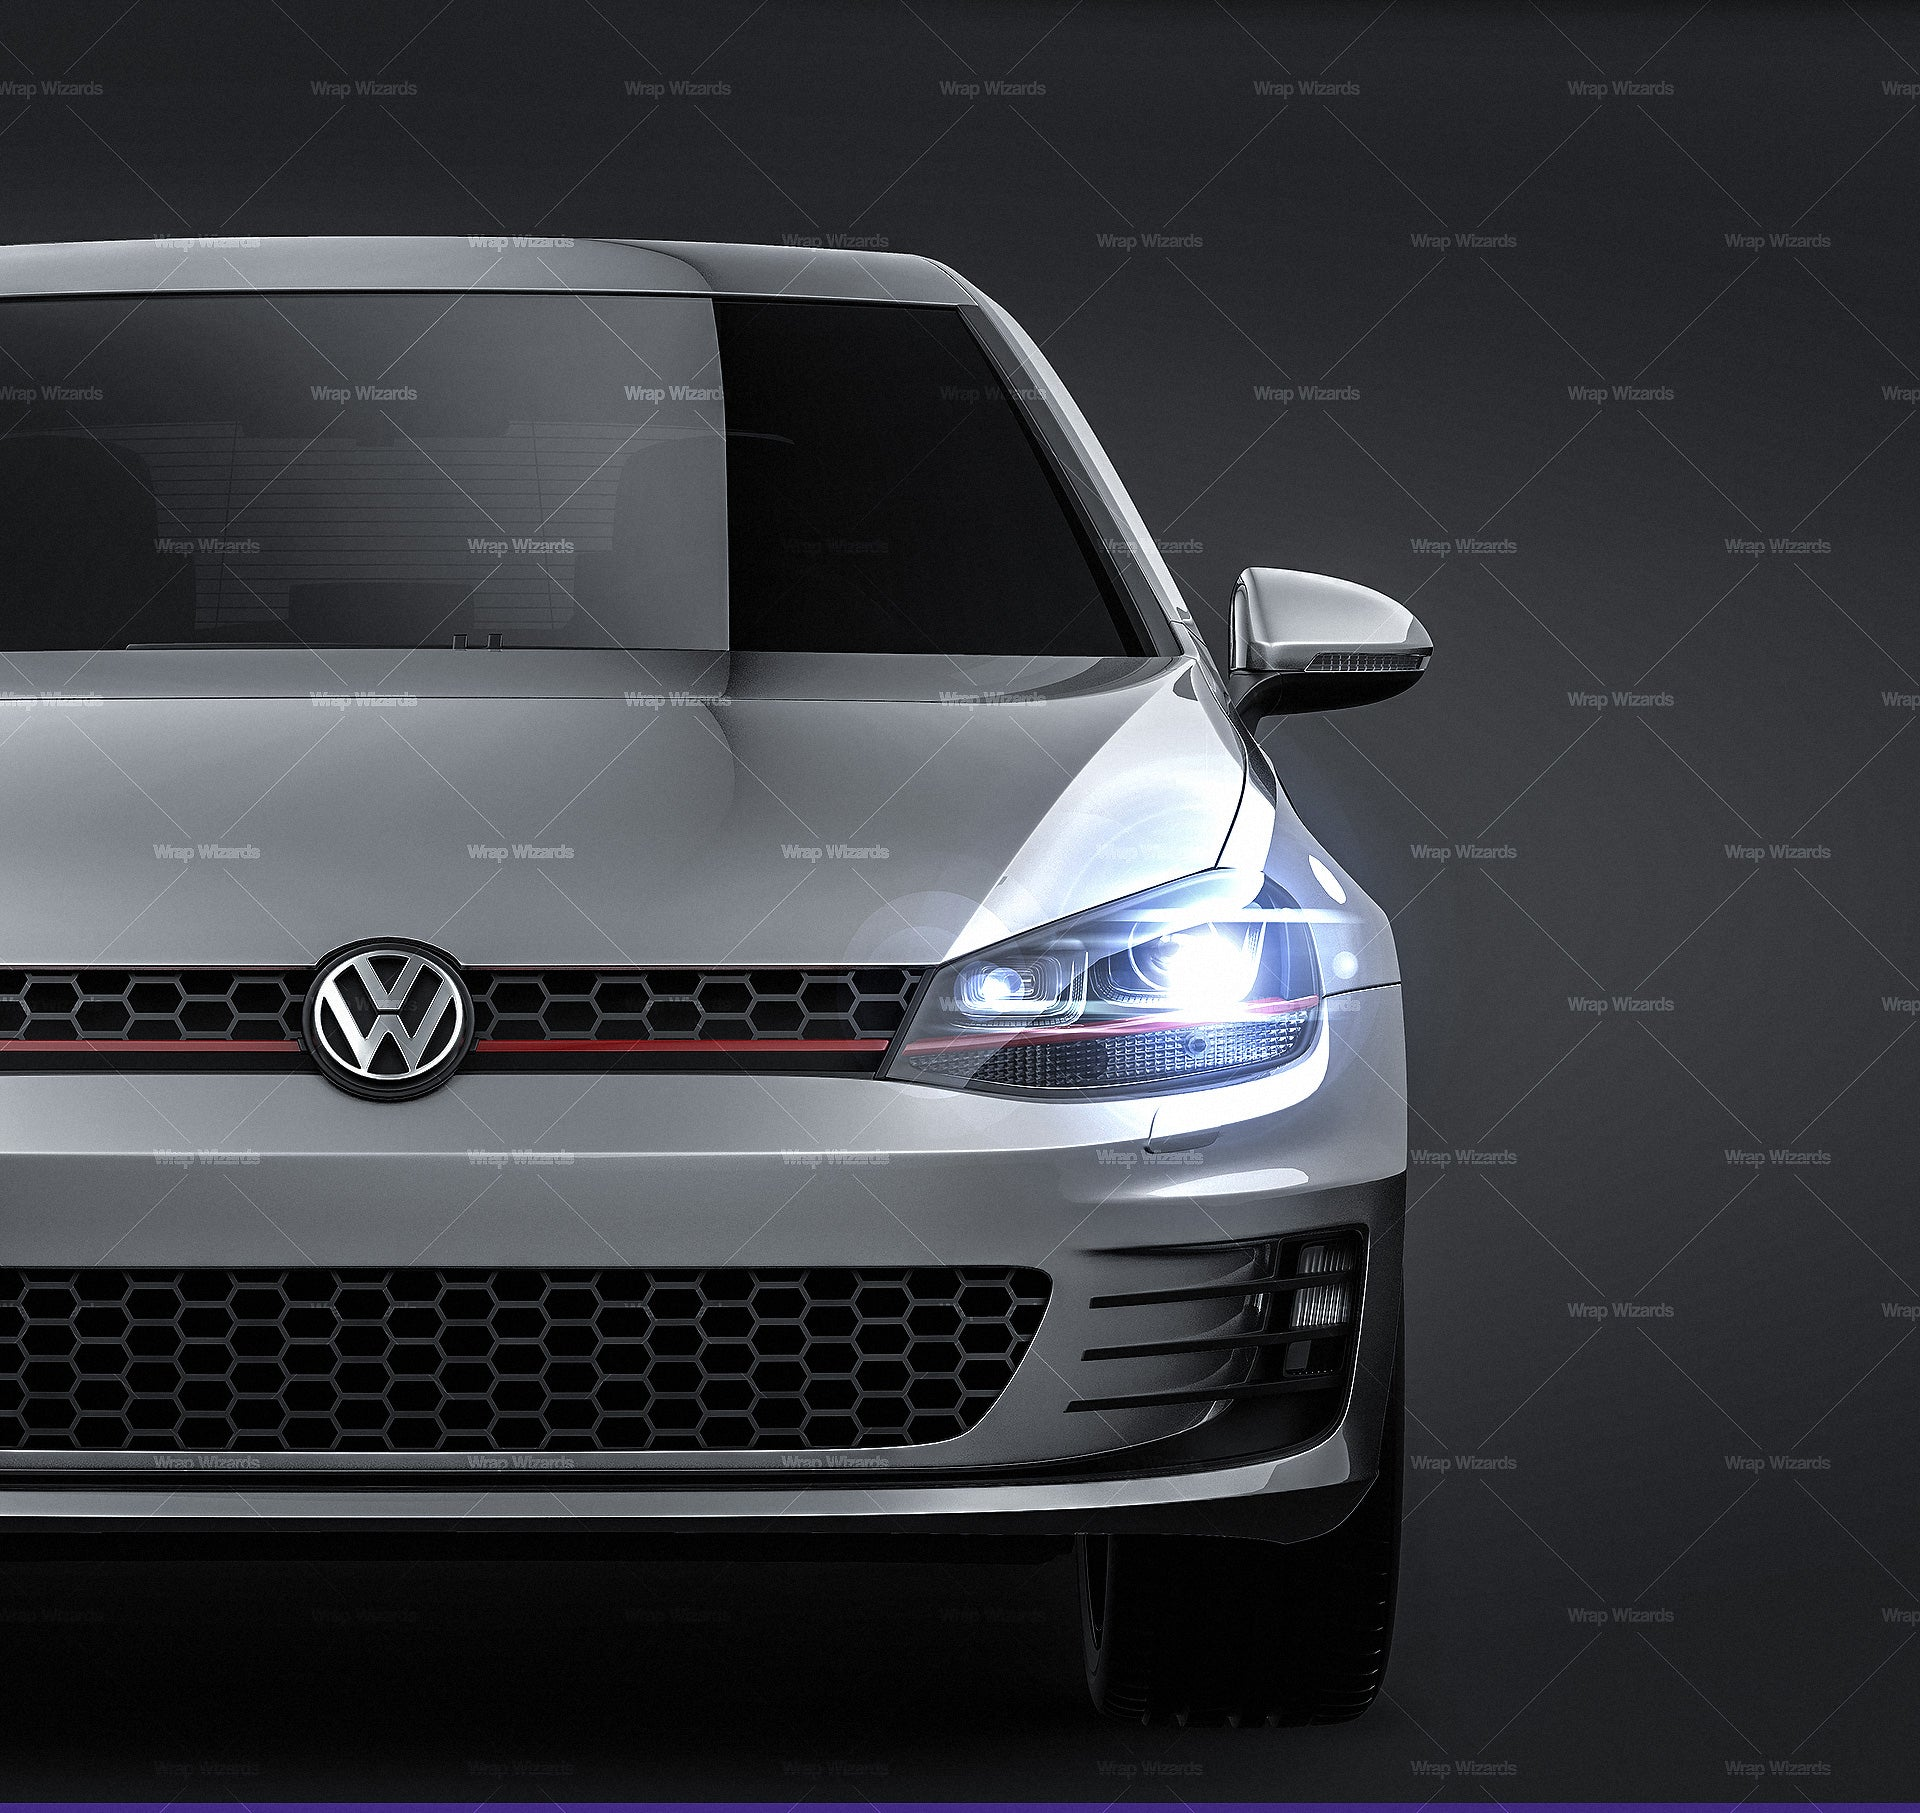 Volkswagen Golf MK7 GTI - all sides Car Mockup Template.psd